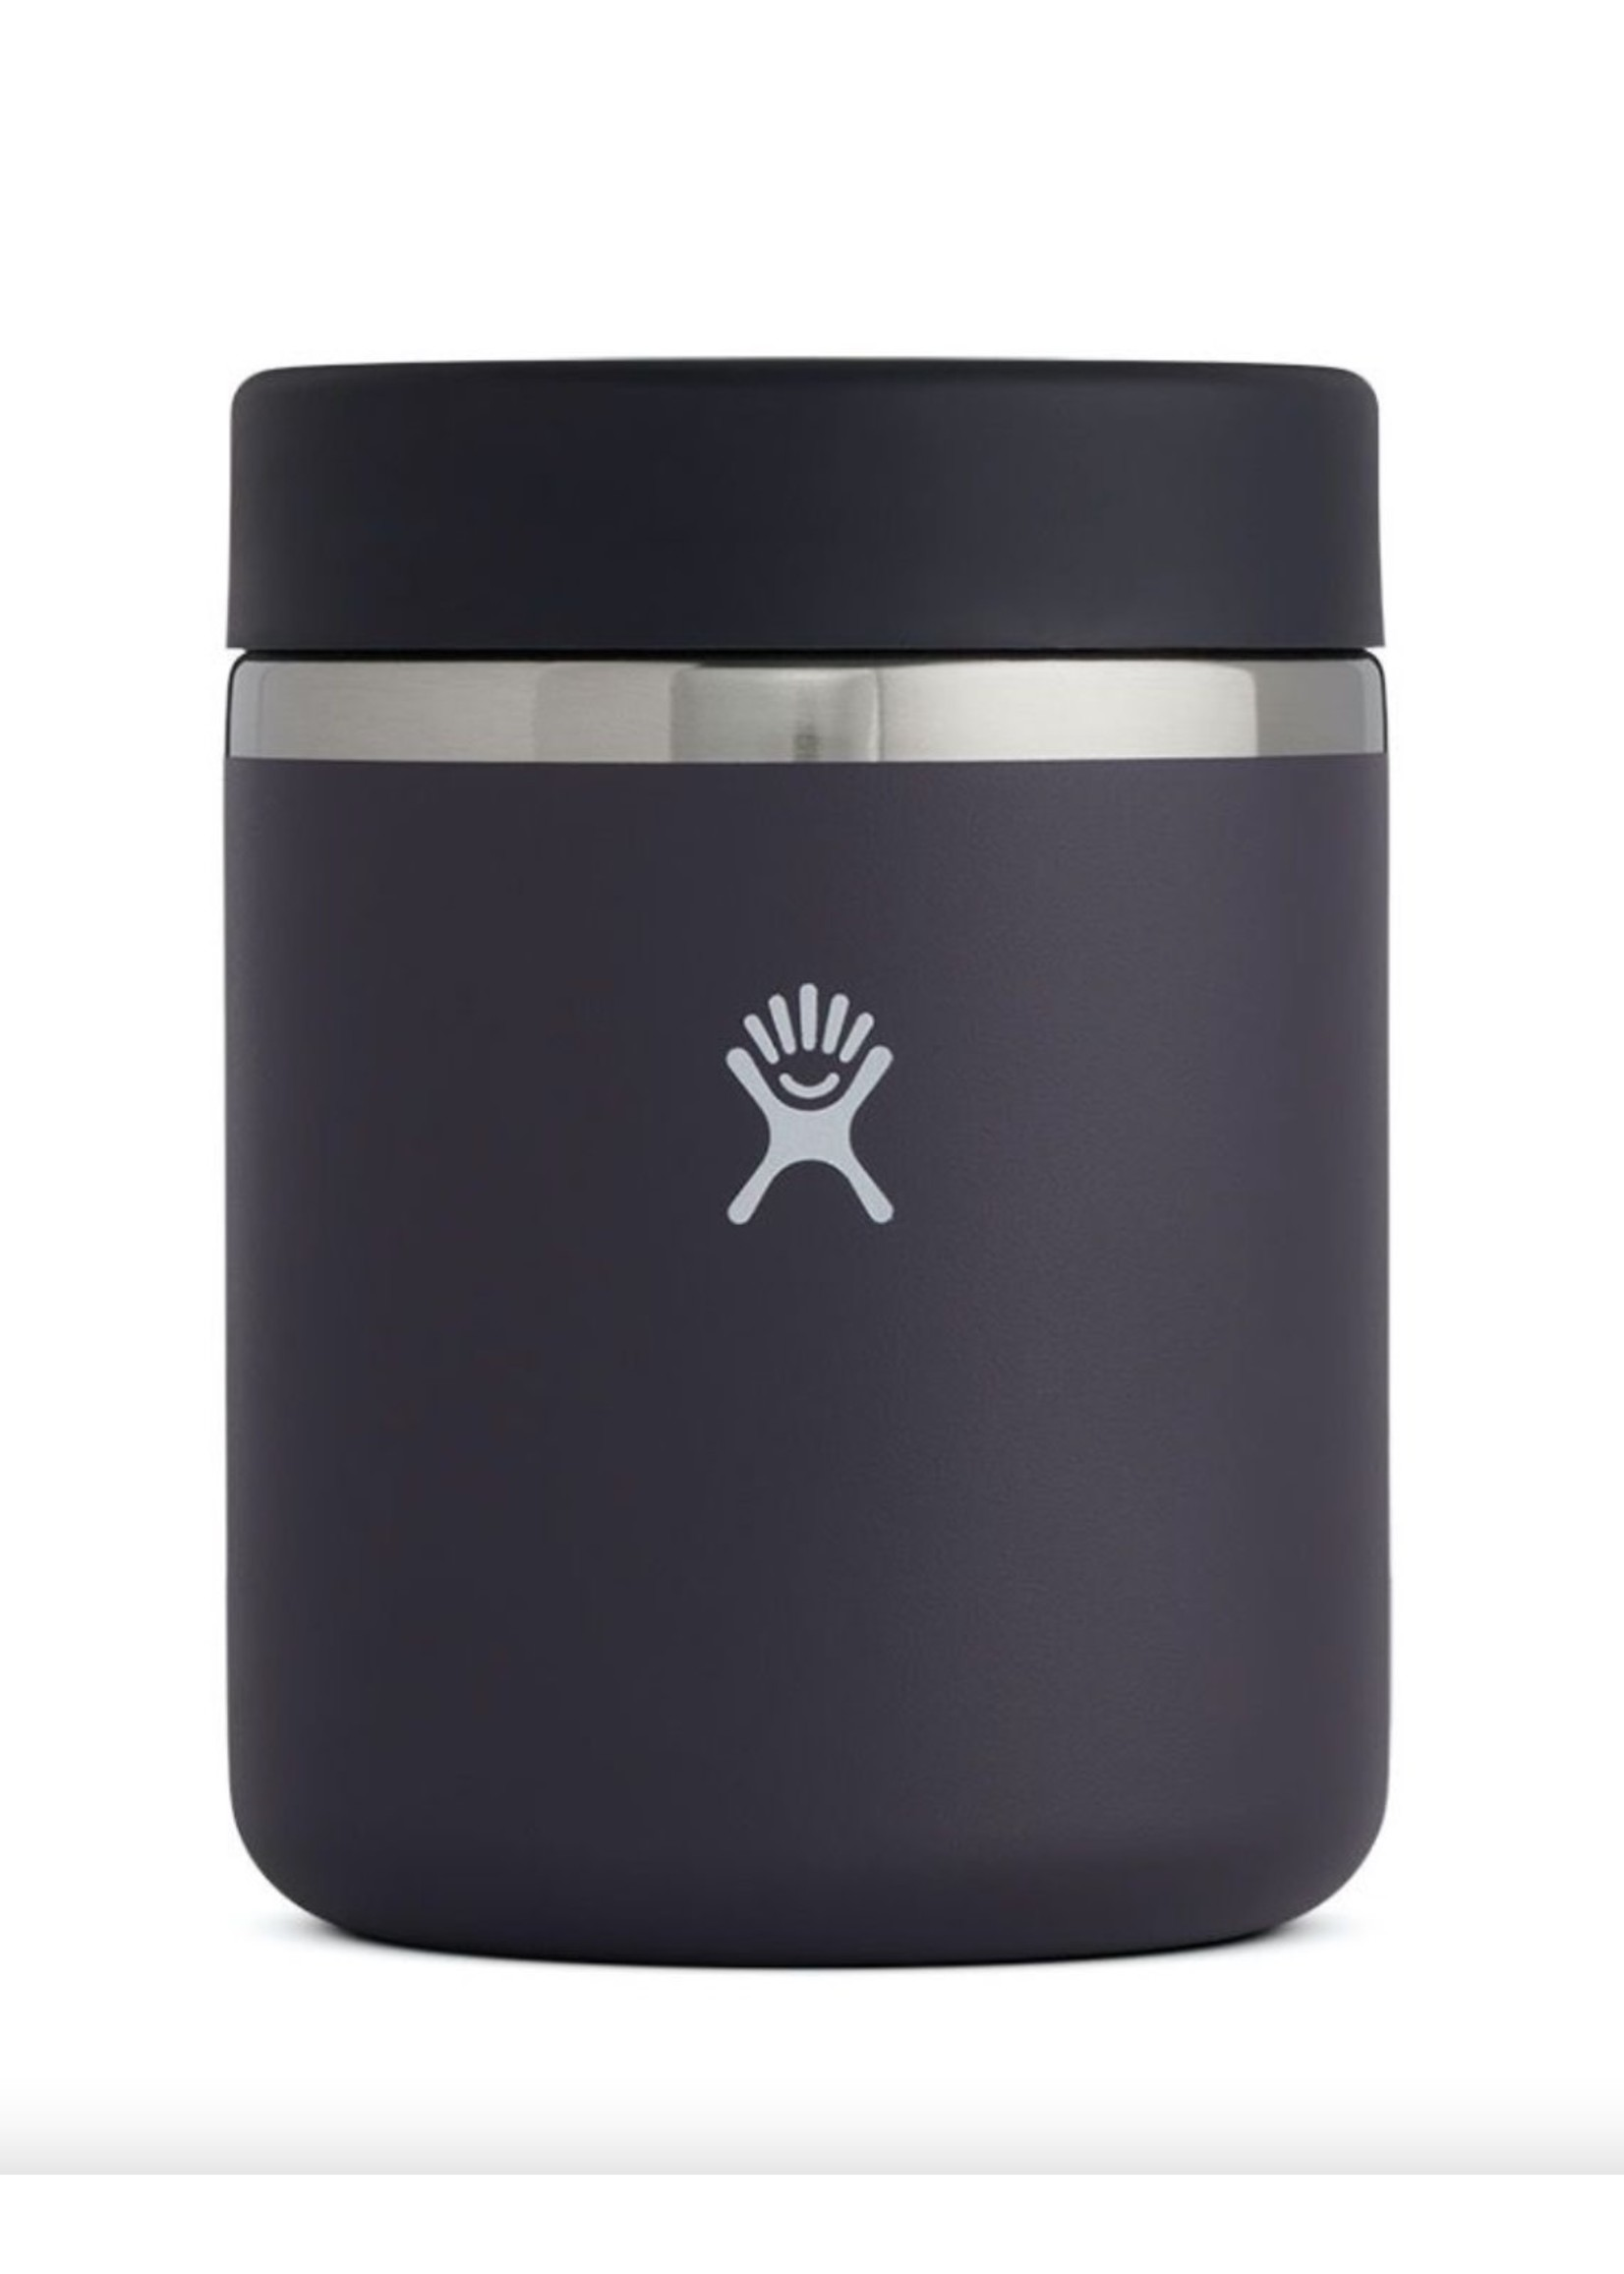 Hydro Flask Hydro Flask, 28oz Insulated Stainless Food Jar